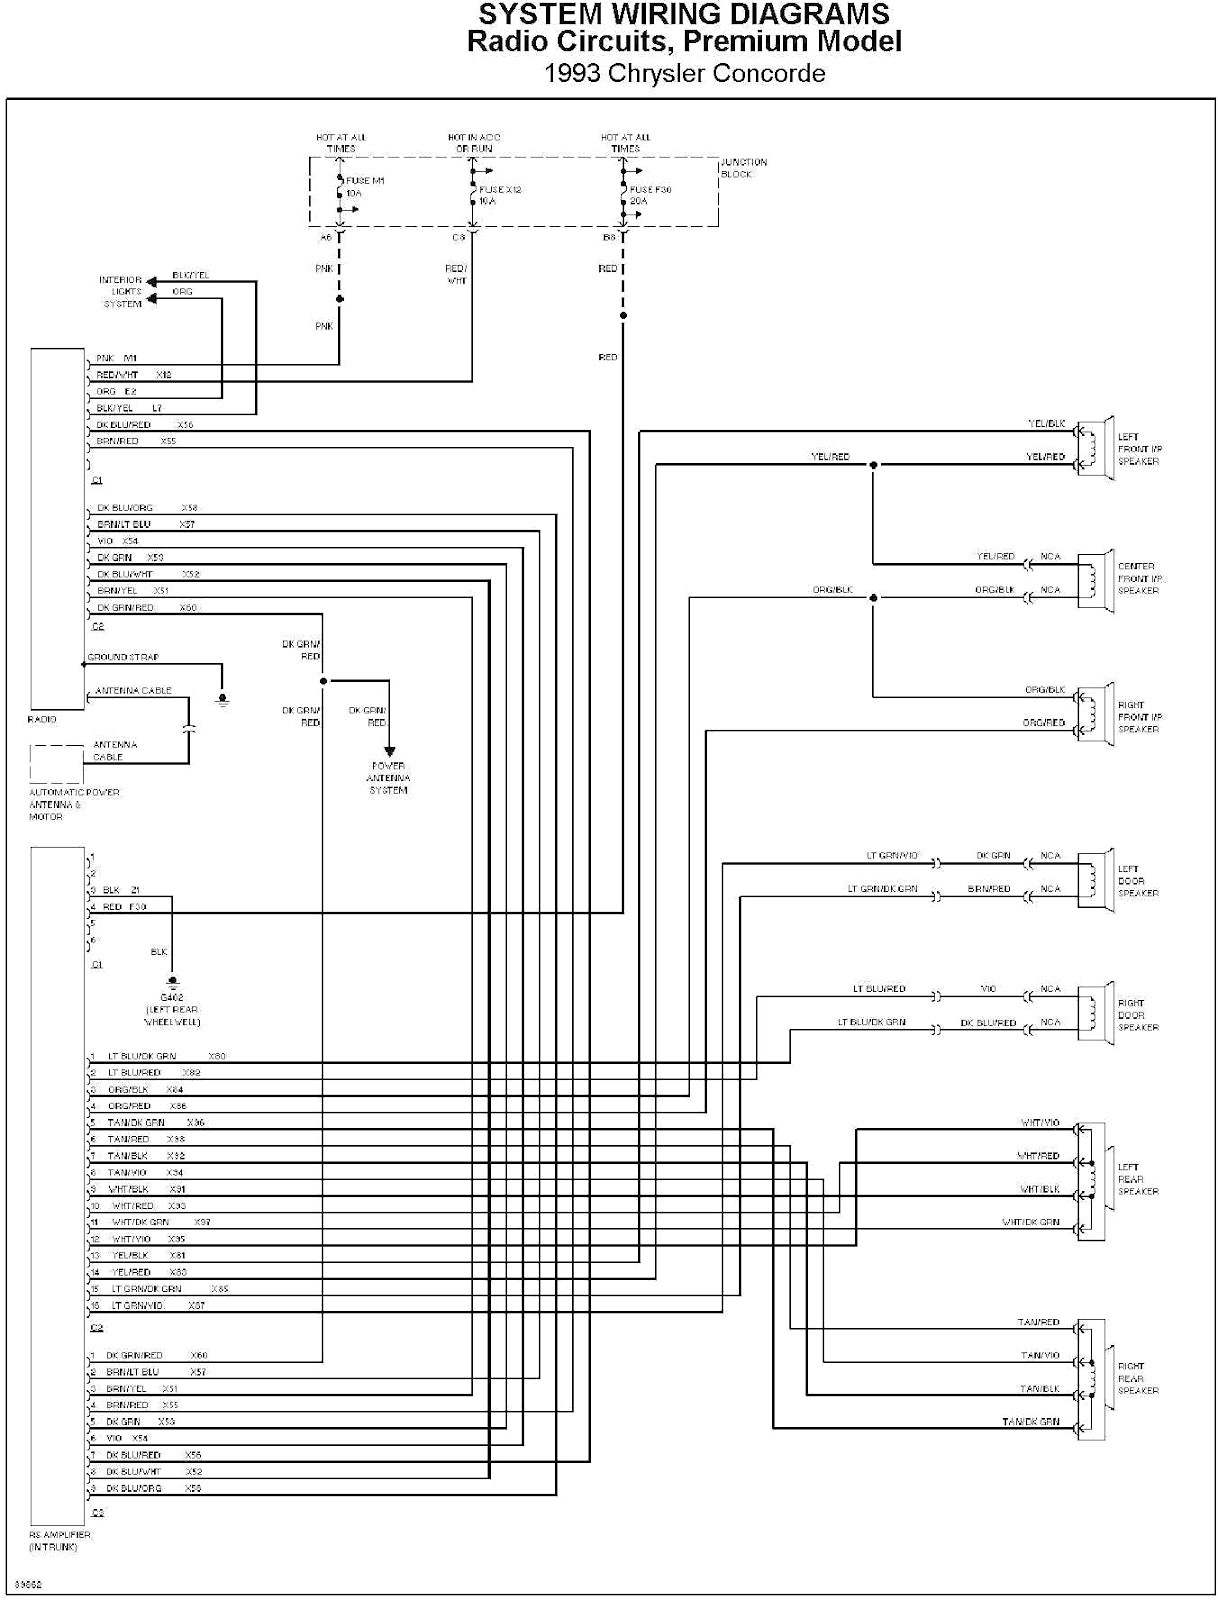 2006 Chrysler 300 Engine Diagram Harley Davidson Radio Wiring Diagram for  0900c Bba2 Gif Bright Of